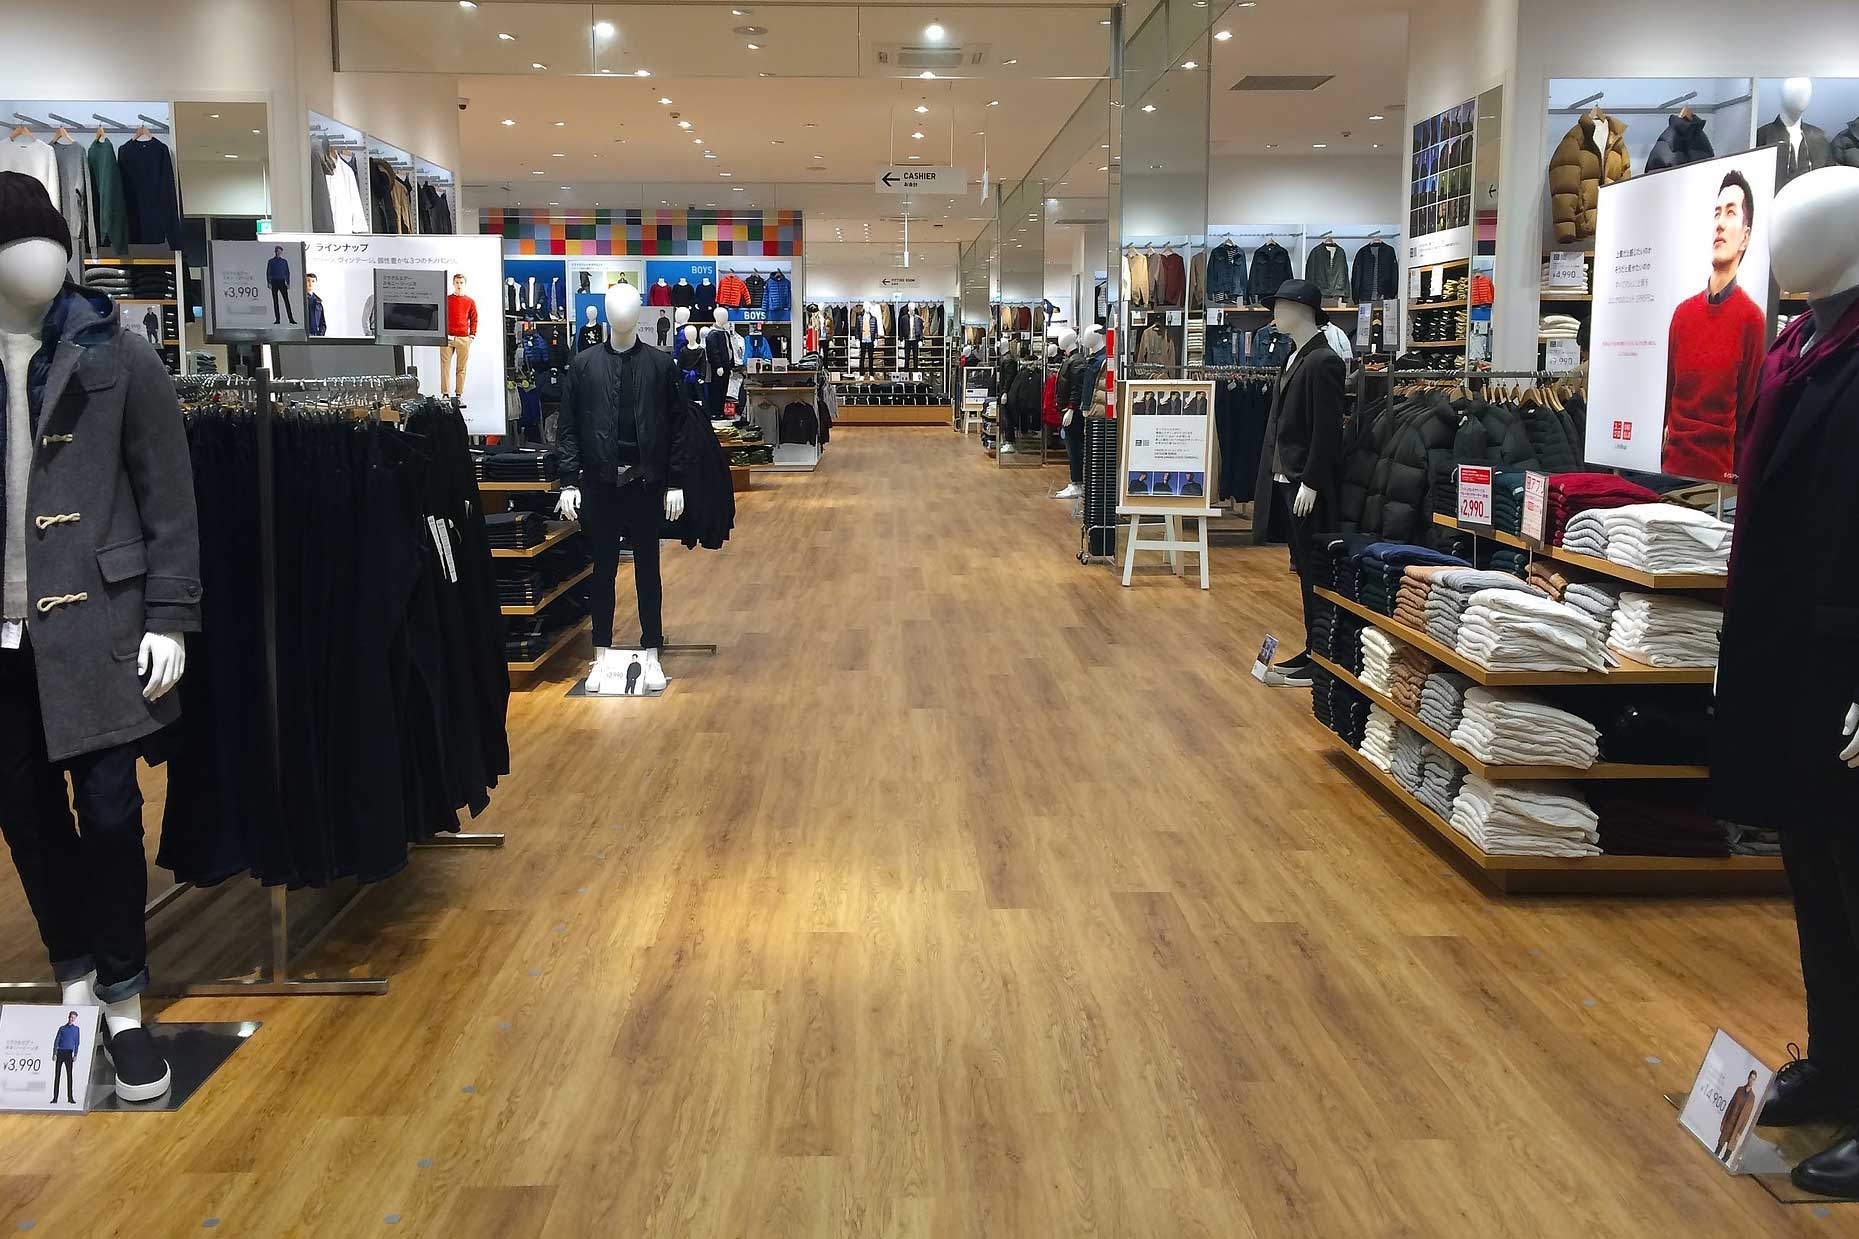 6 Tips For Creating A Well Designed Store Layout